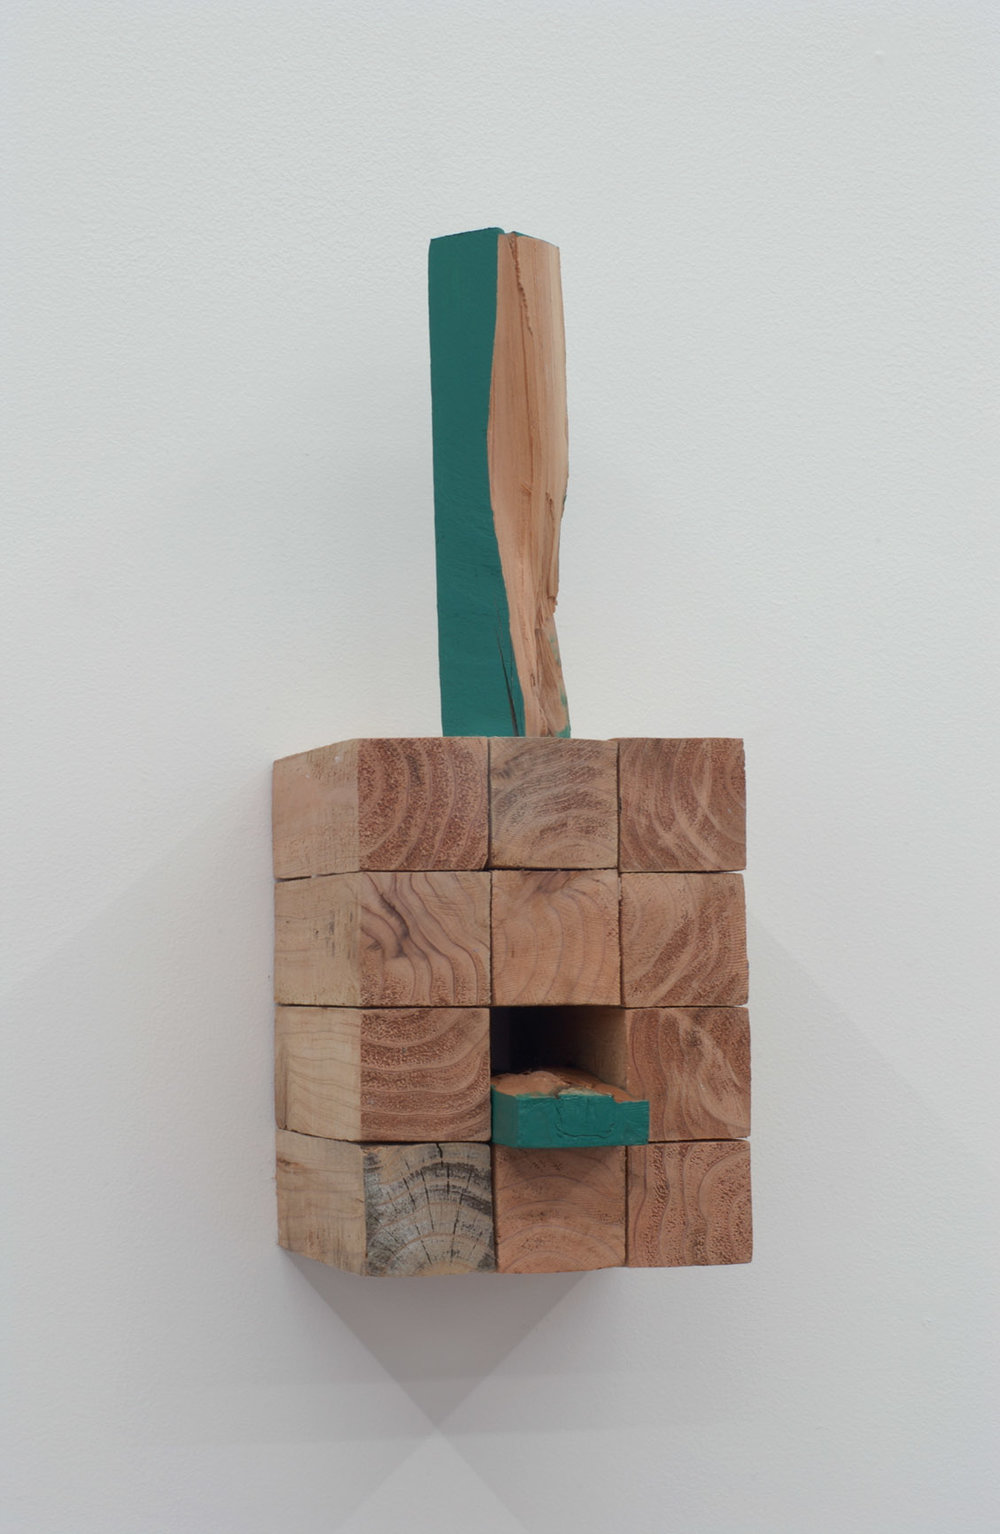 Polysemy , 2006 多義性 ( Tagisei ) Wood, water-based paint 14 1/8 x 5 3/8 x 5 7/8 inches 36 x 13.5 x 15 cm